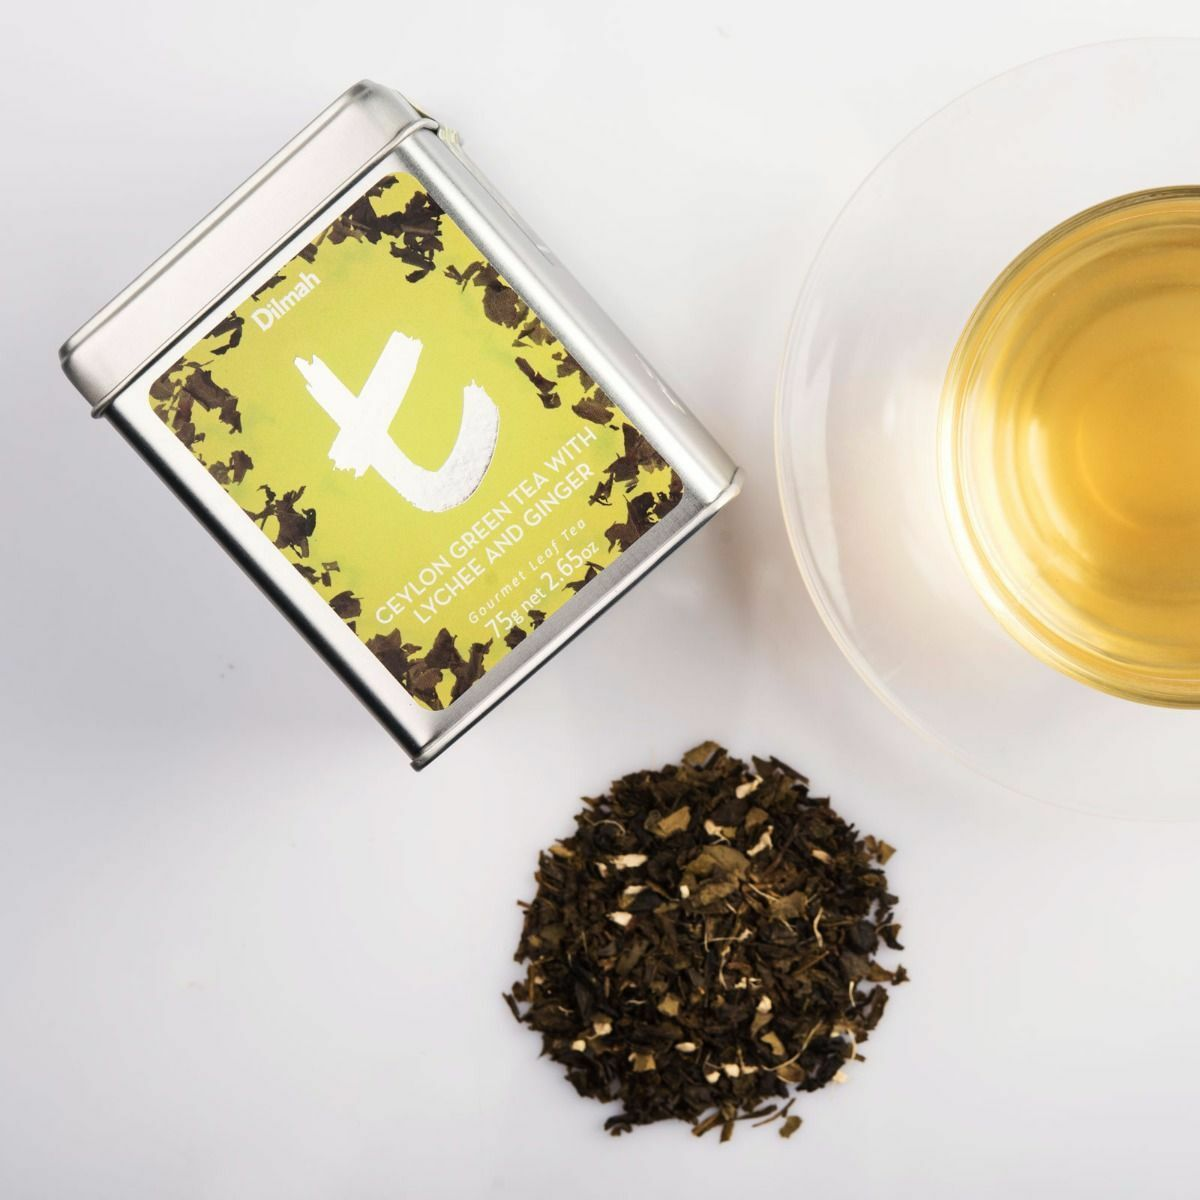 S l1600g dilmah ceylon tea loose leaf green tea with ginger lychee tea izmirmasajfo Images